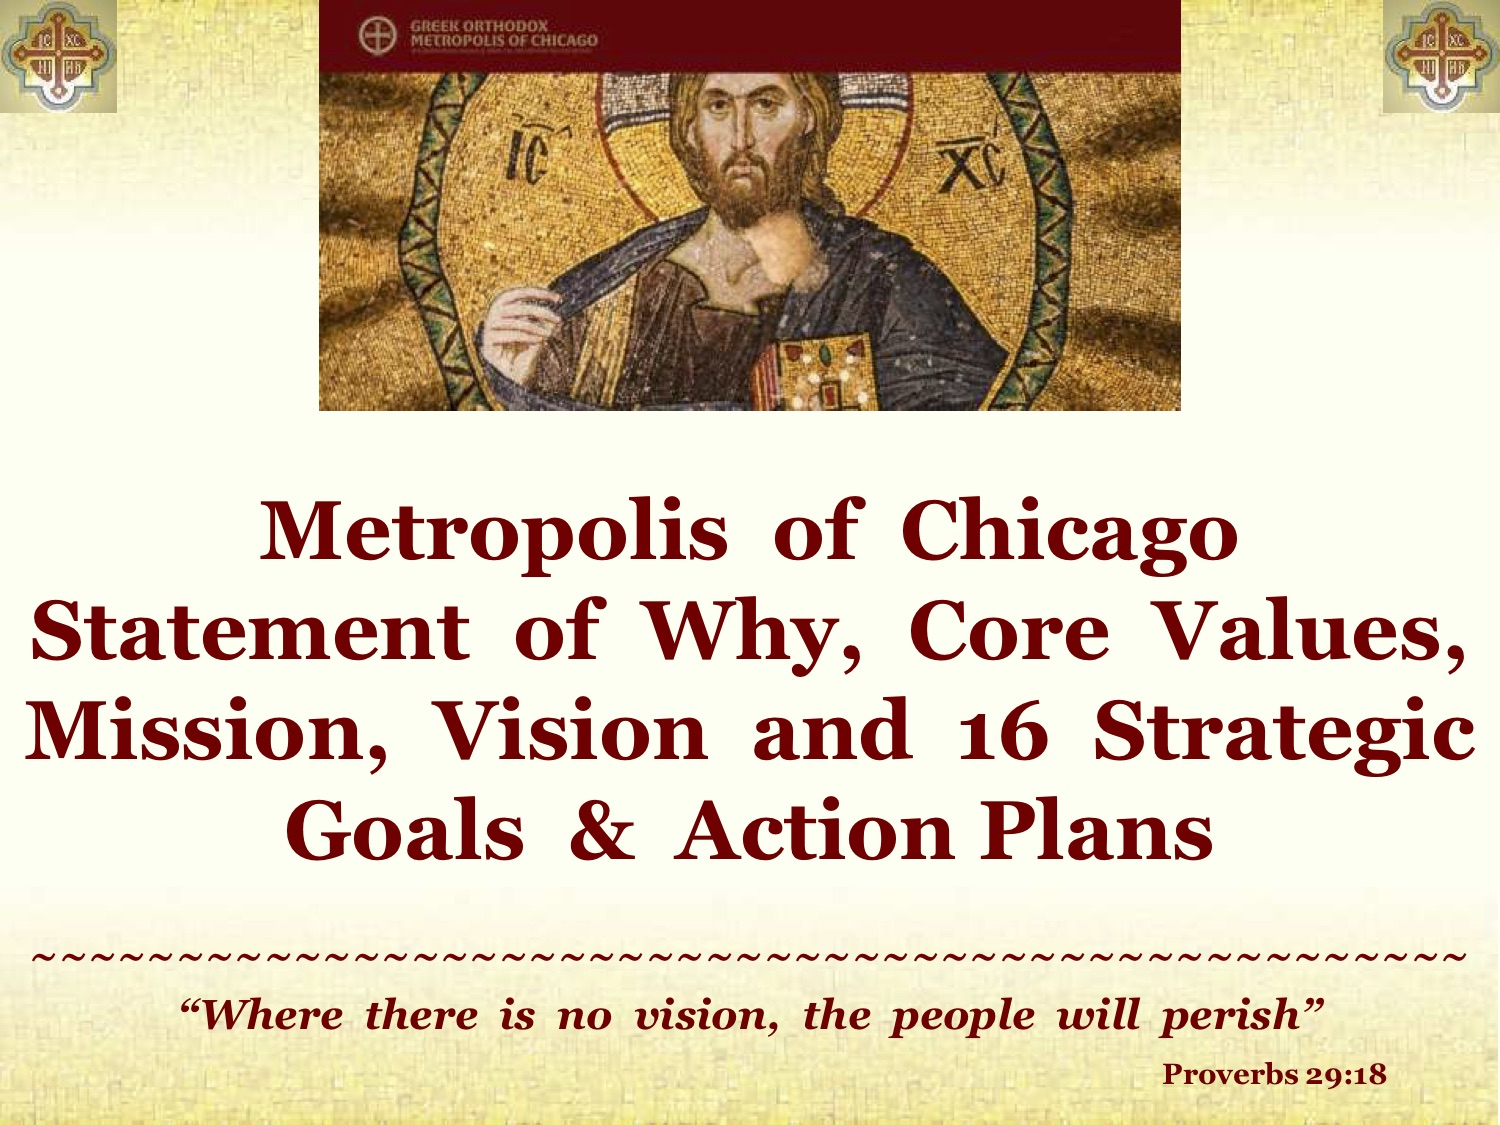 FINAL METROPOLIS OF CHICAGO Why, Values, Mission, Vision & 16 Strategic Goals and Action Plans.jpg